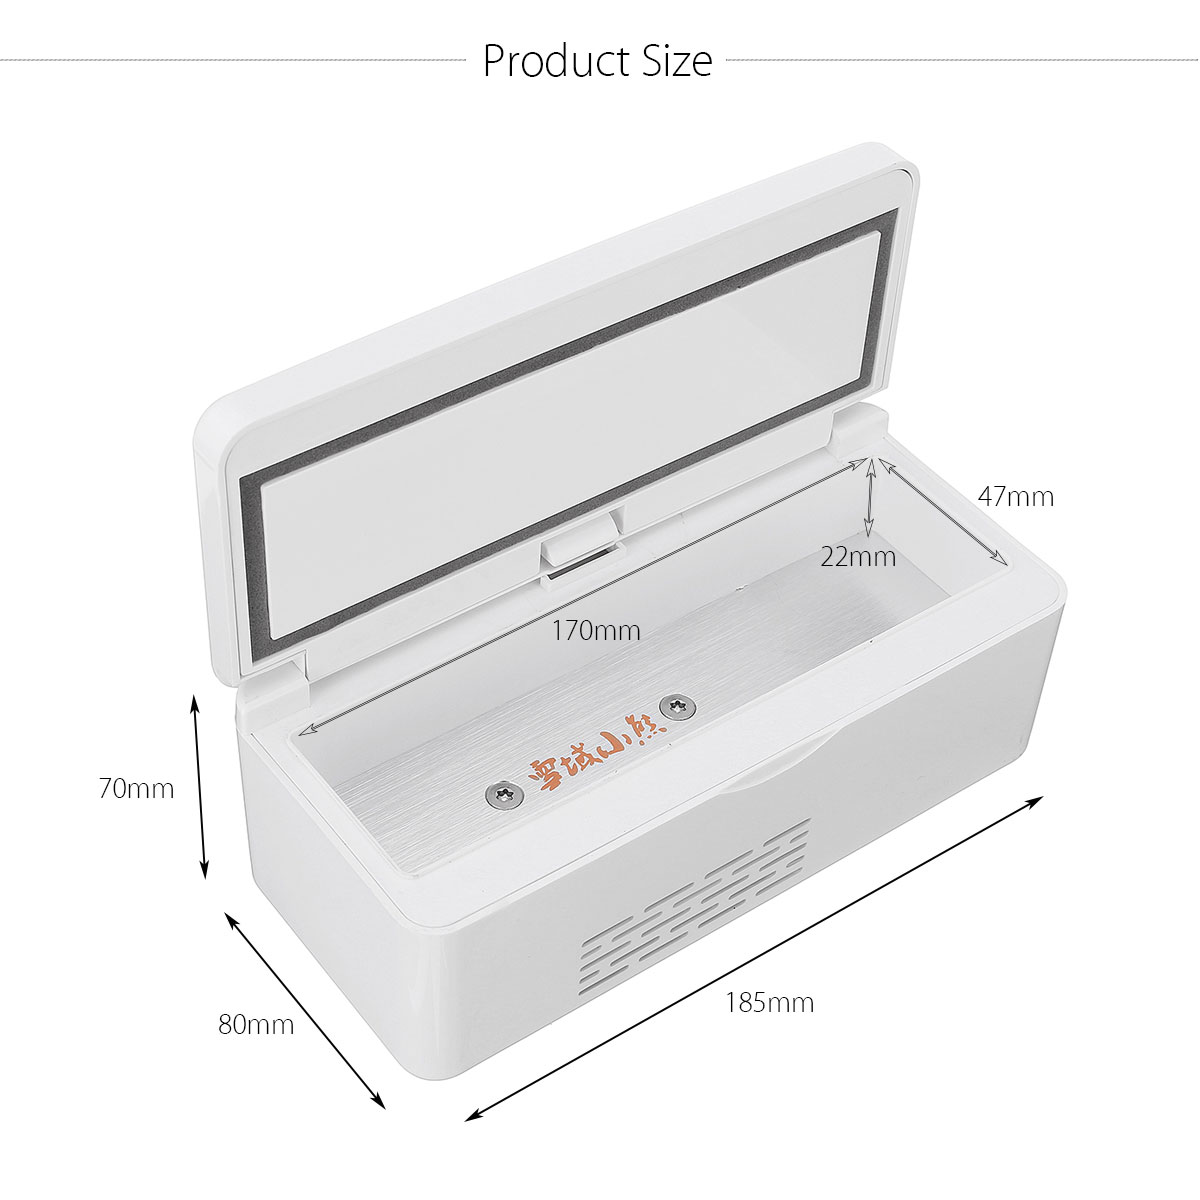 USB Medicine Fridge Refrigerator Insulin Cooler Box Case 2-8℃ for Lab